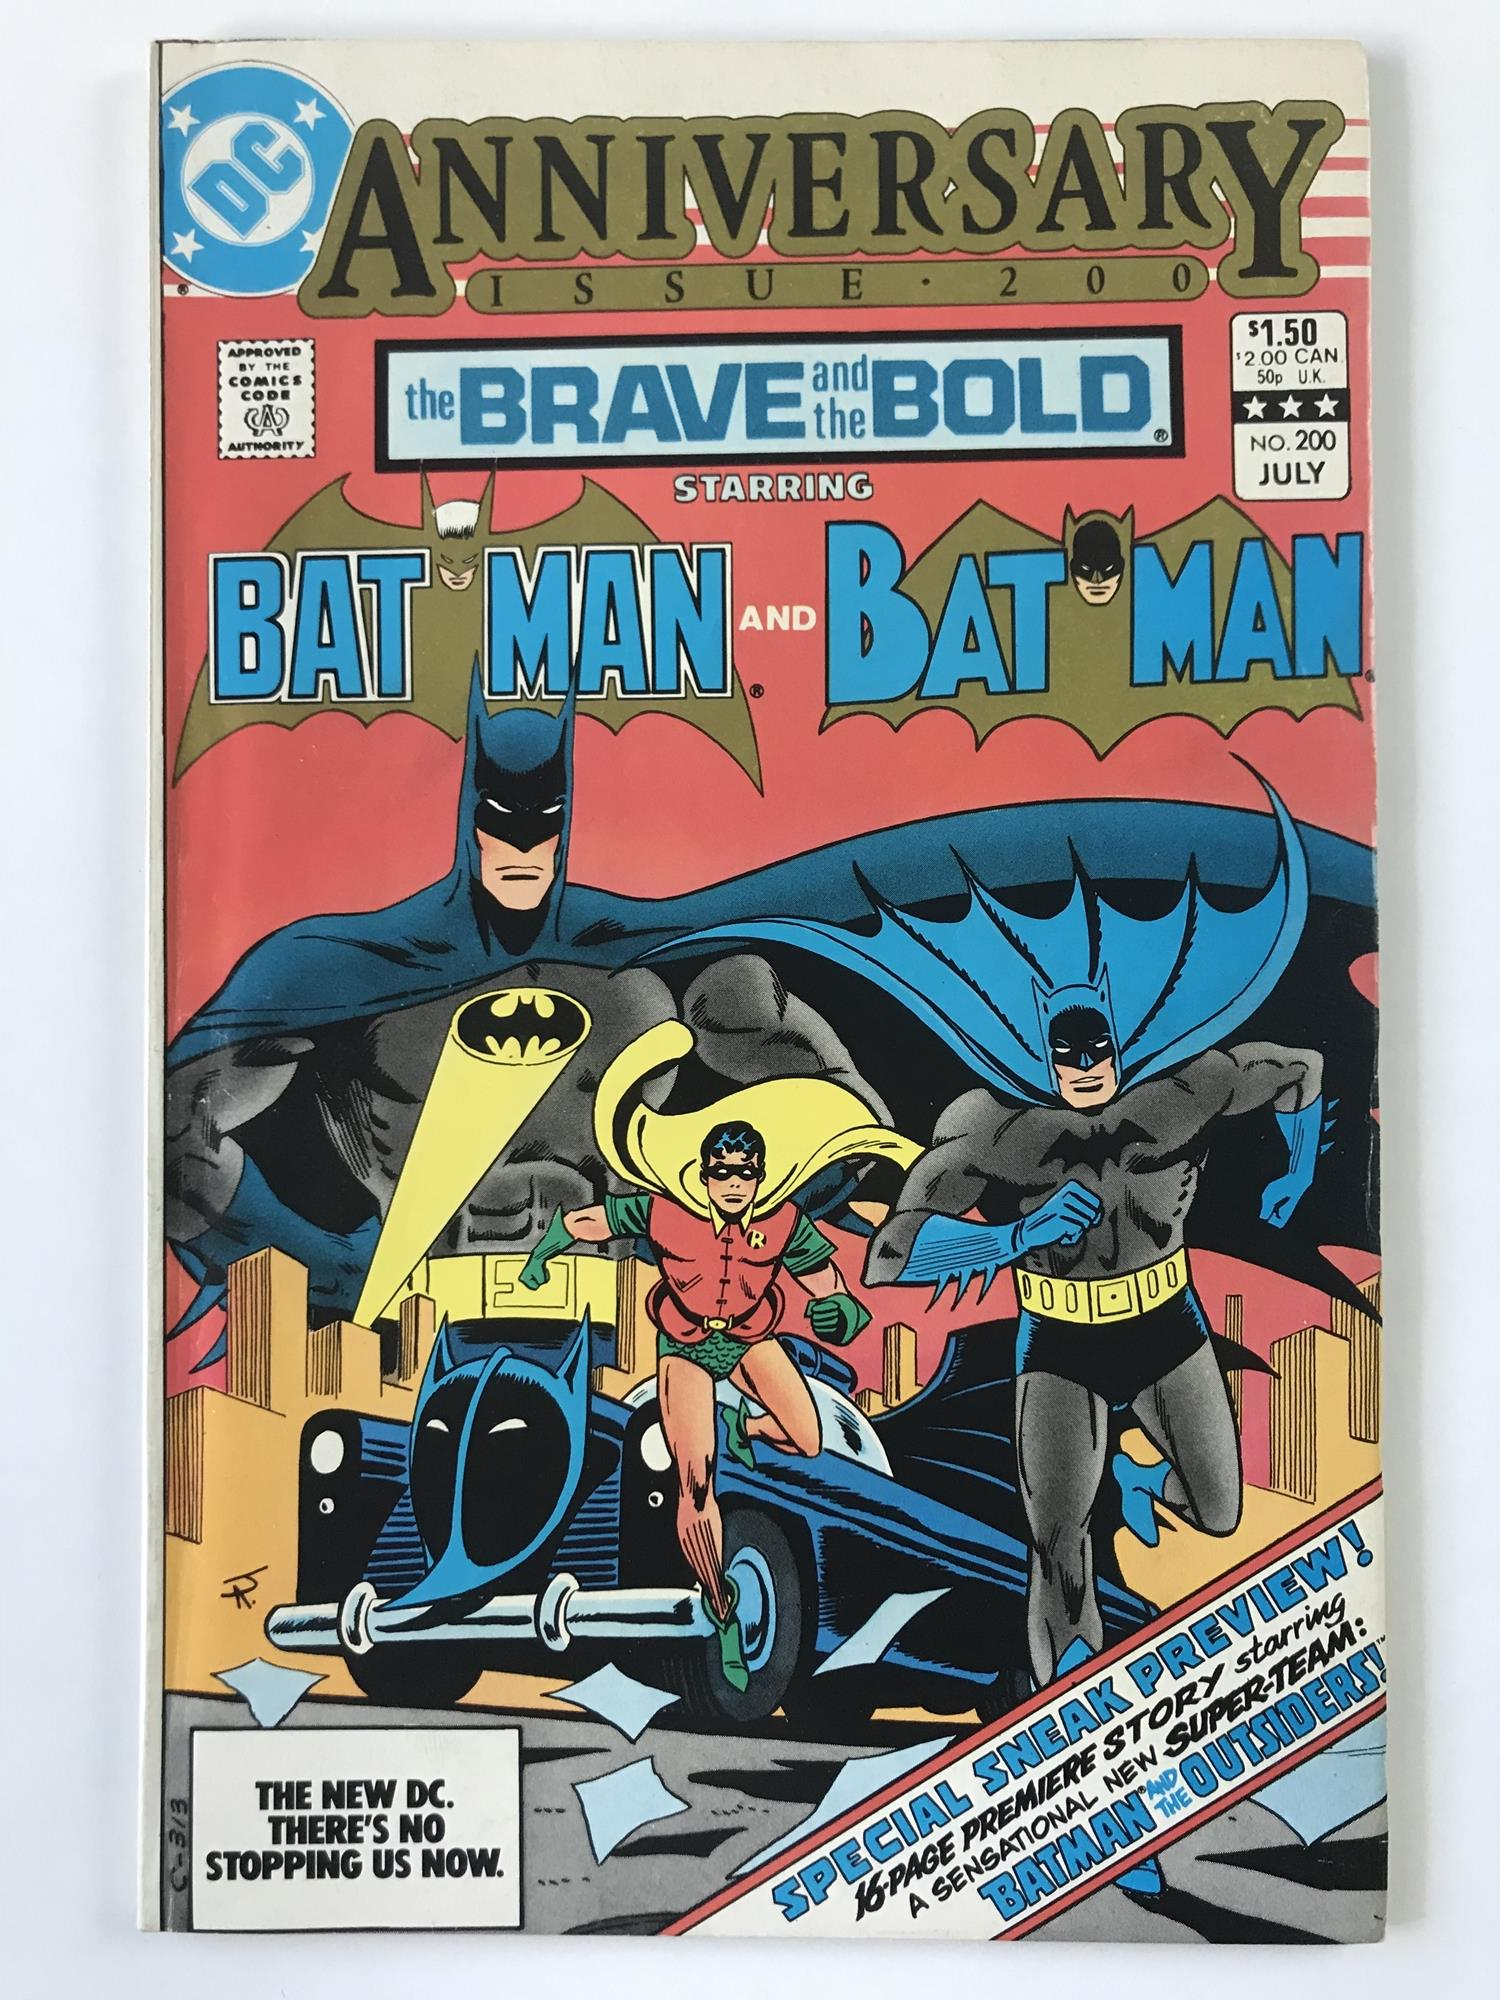 Lot 53 - BRAVE & BOLD: BATMAN # 200 (1983 - DC - Cents/Pence Copy) - Last issue + First appearance of